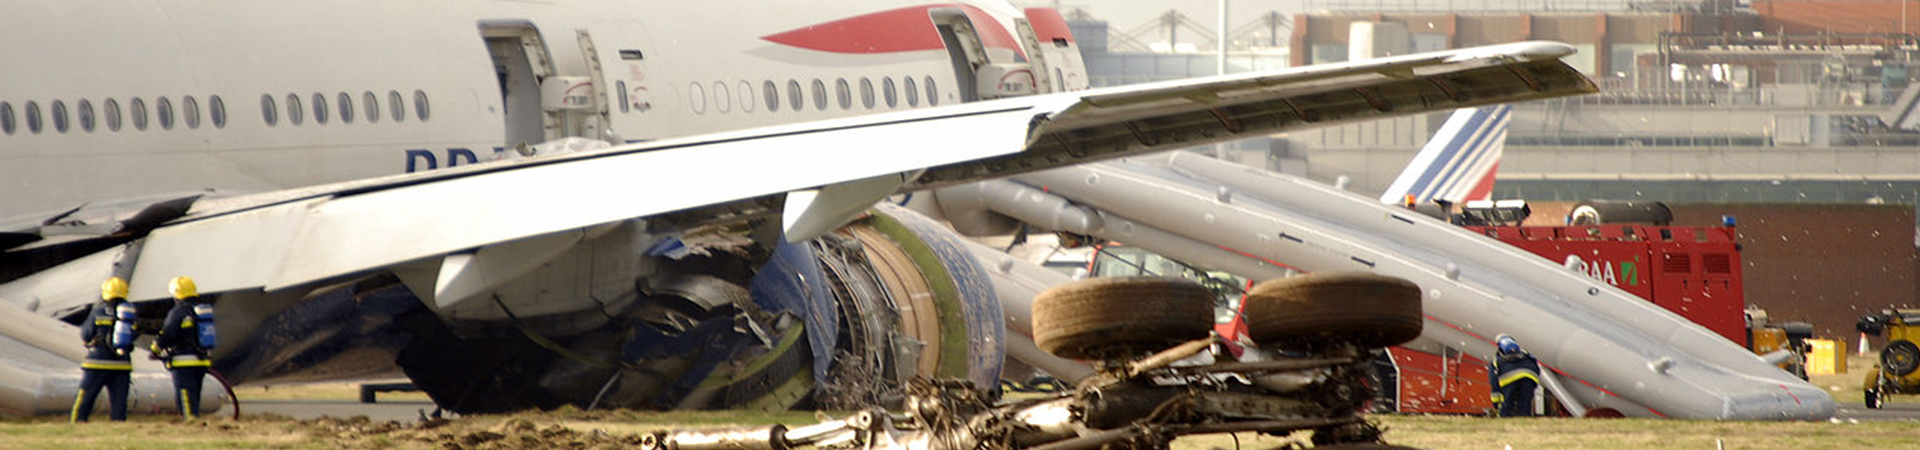 Aviation Accident Attorneys in Los Angeles